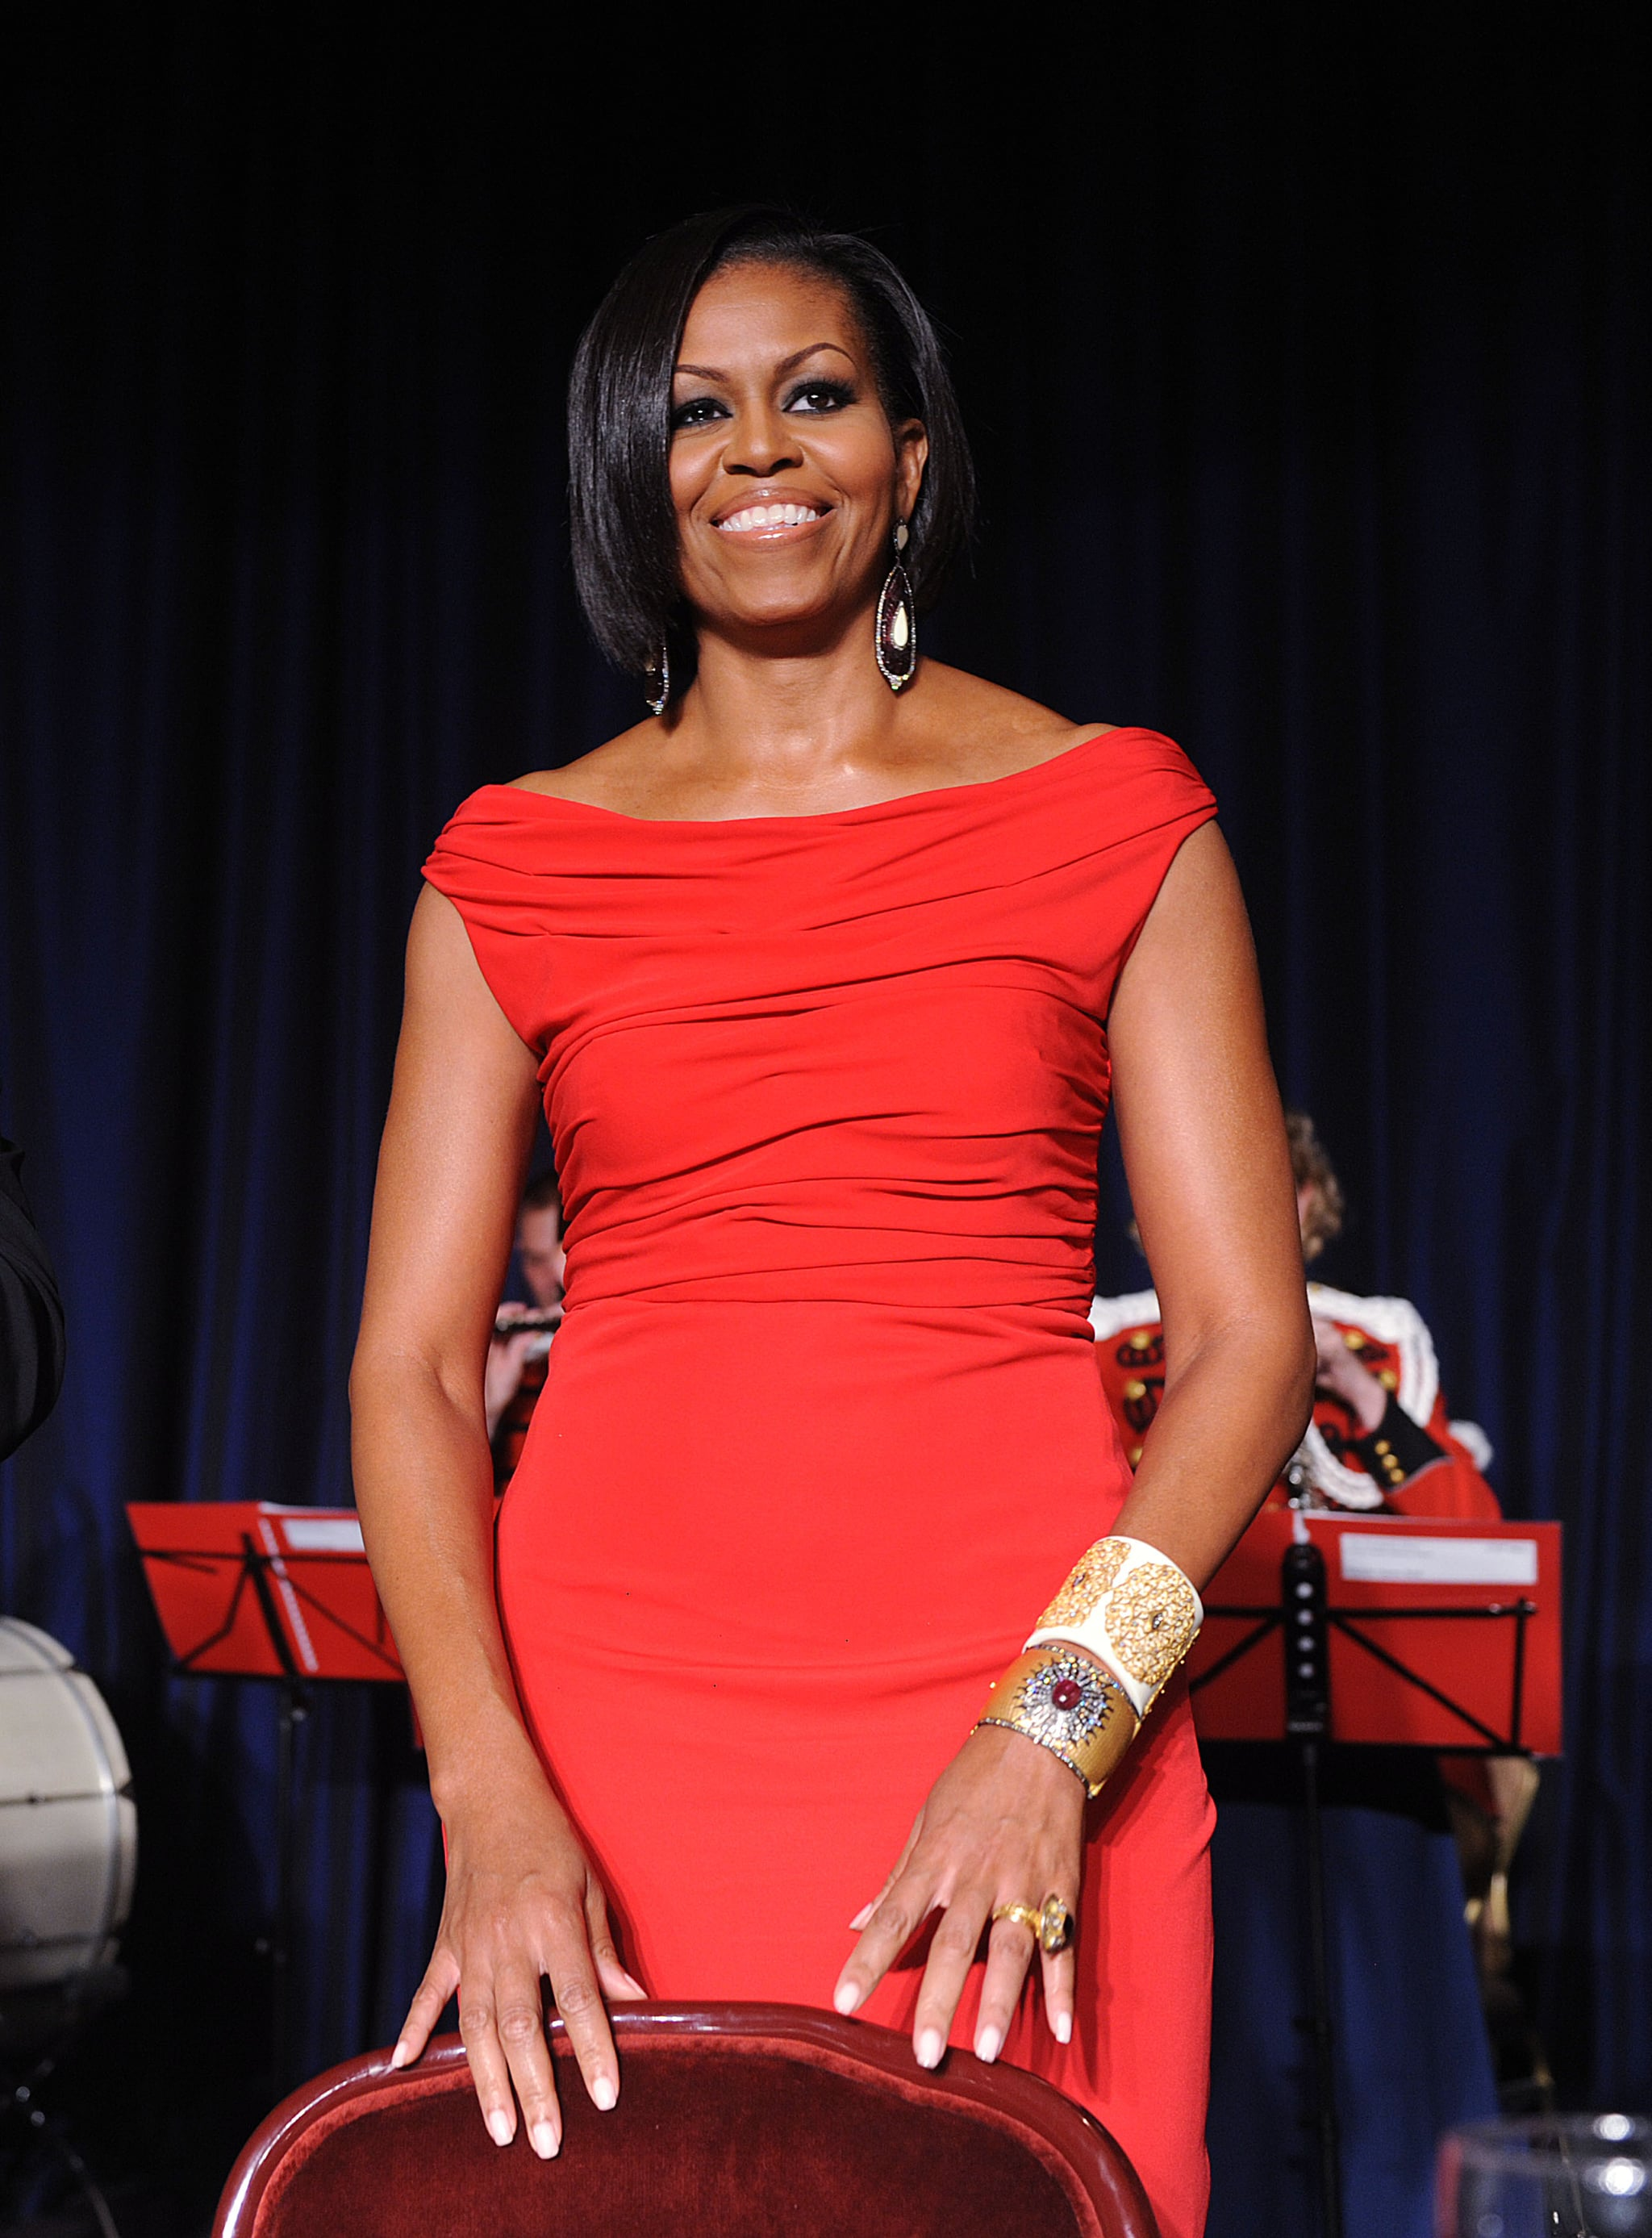 Michelle chose a red, drapey Prabal Gurung gown for the 2010 White House Correspondents' Dinner.